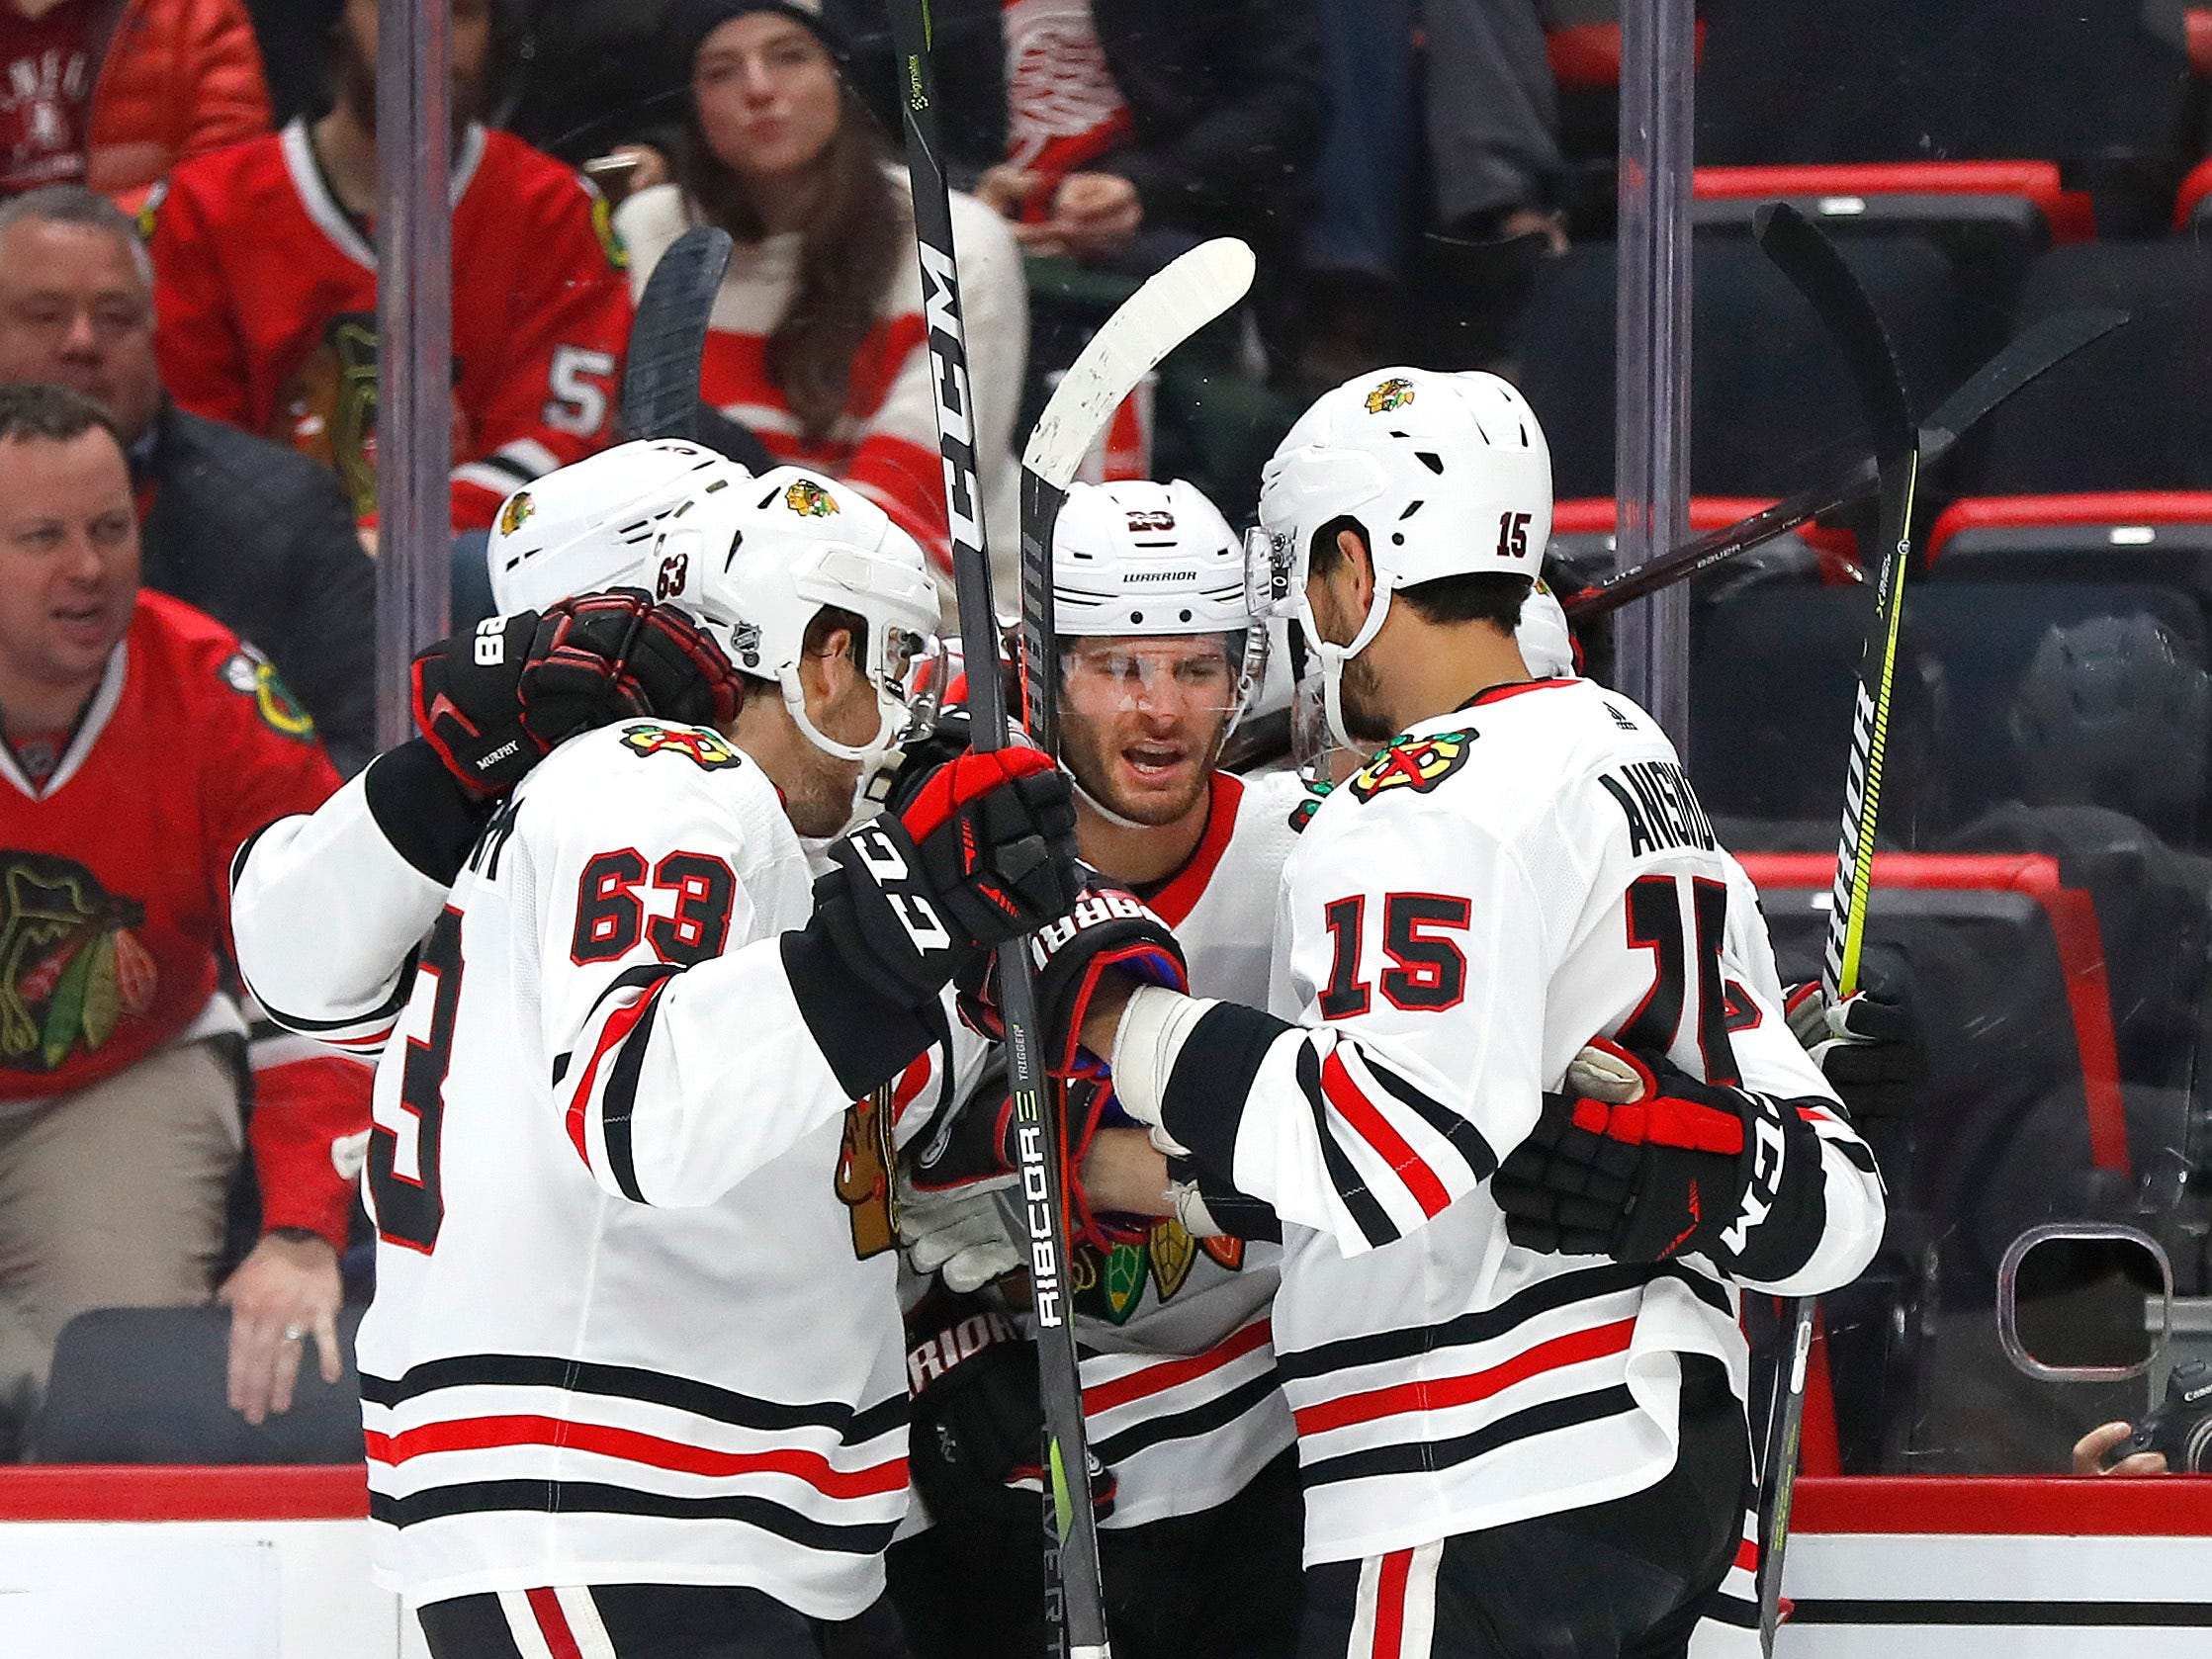 Chicago Blackhawks left wing Brandon Saad, second from left, celebrates his goal against the Detroit Red Wings in the first period of an NHL hockey game Wednesday, Feb. 20, 2019, in Detroit.